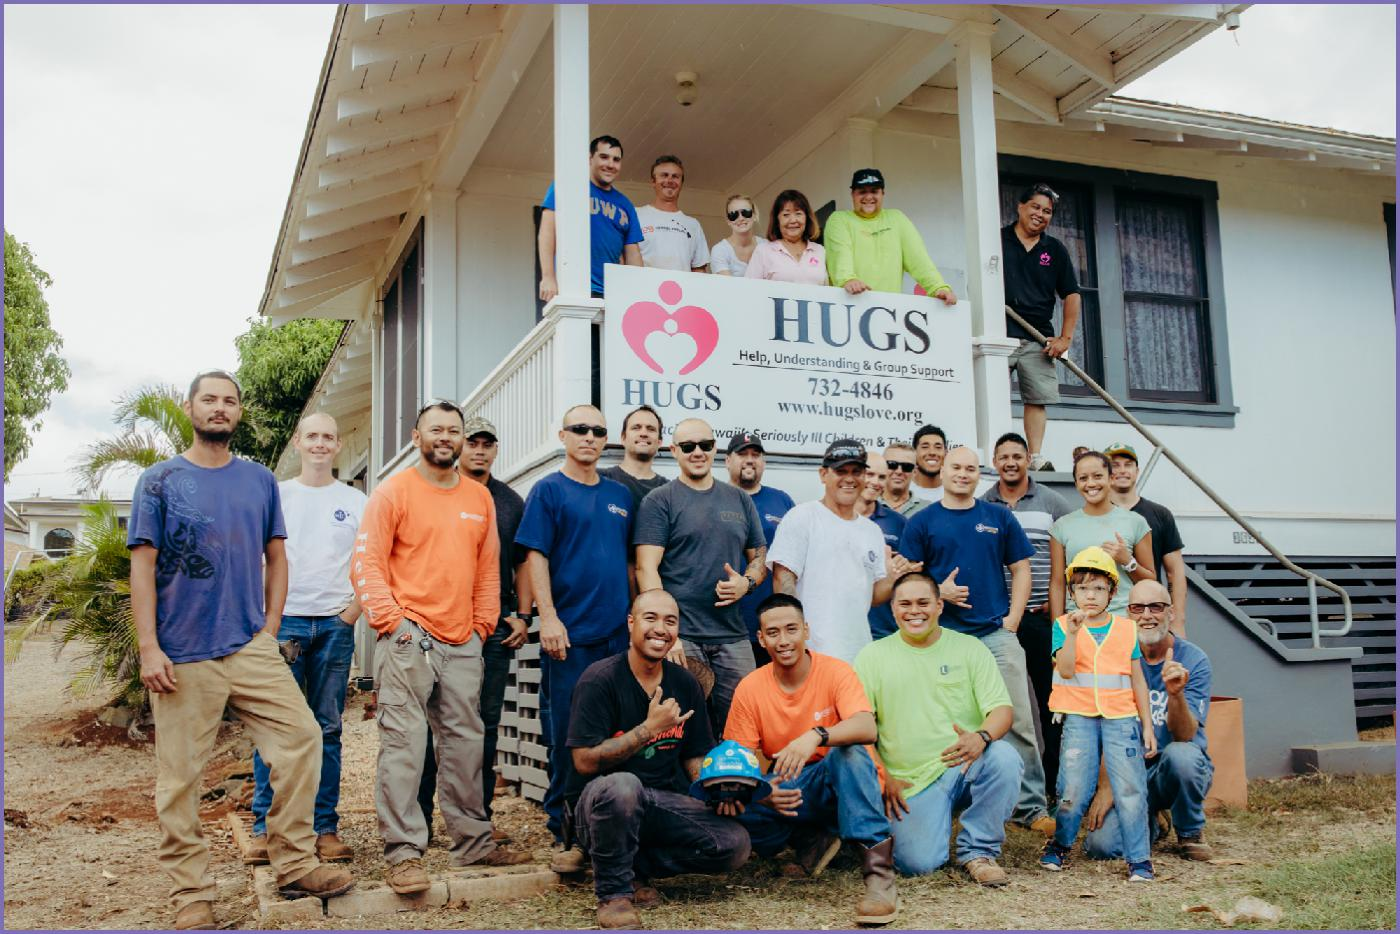 HUGS Foundation - Volunteer Event - Honolulu, Oahu, Hawaii - Ketino Photography - Hawaii Branding Photogragrapher.jpg